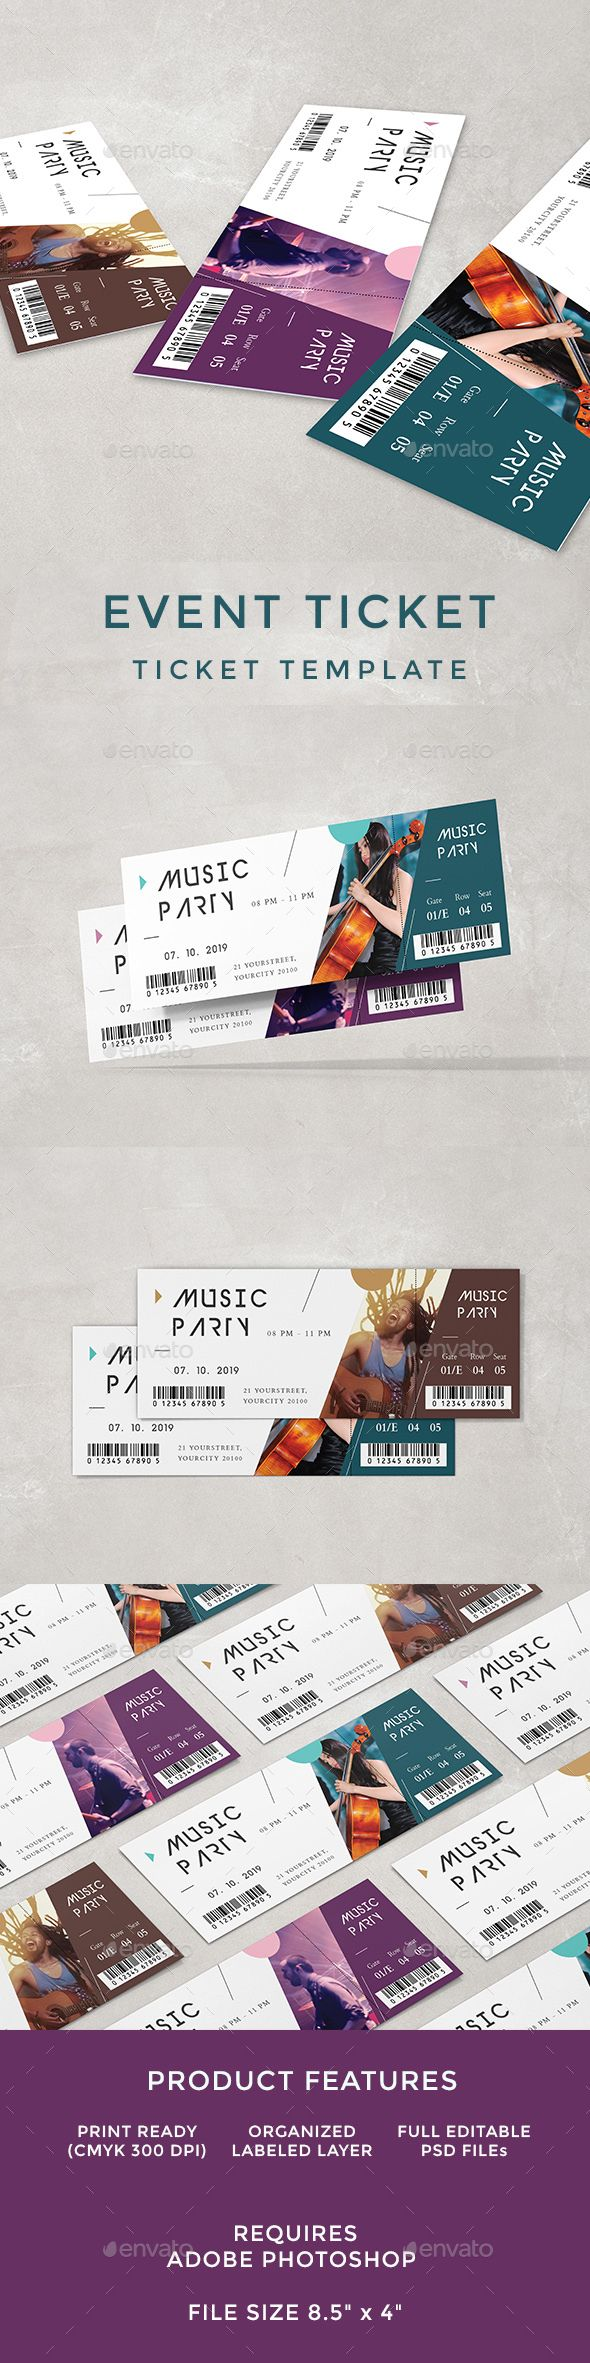 Concert Ticket Template Free Download Cool Event Ticket  Event Ticket Print Templates And Template